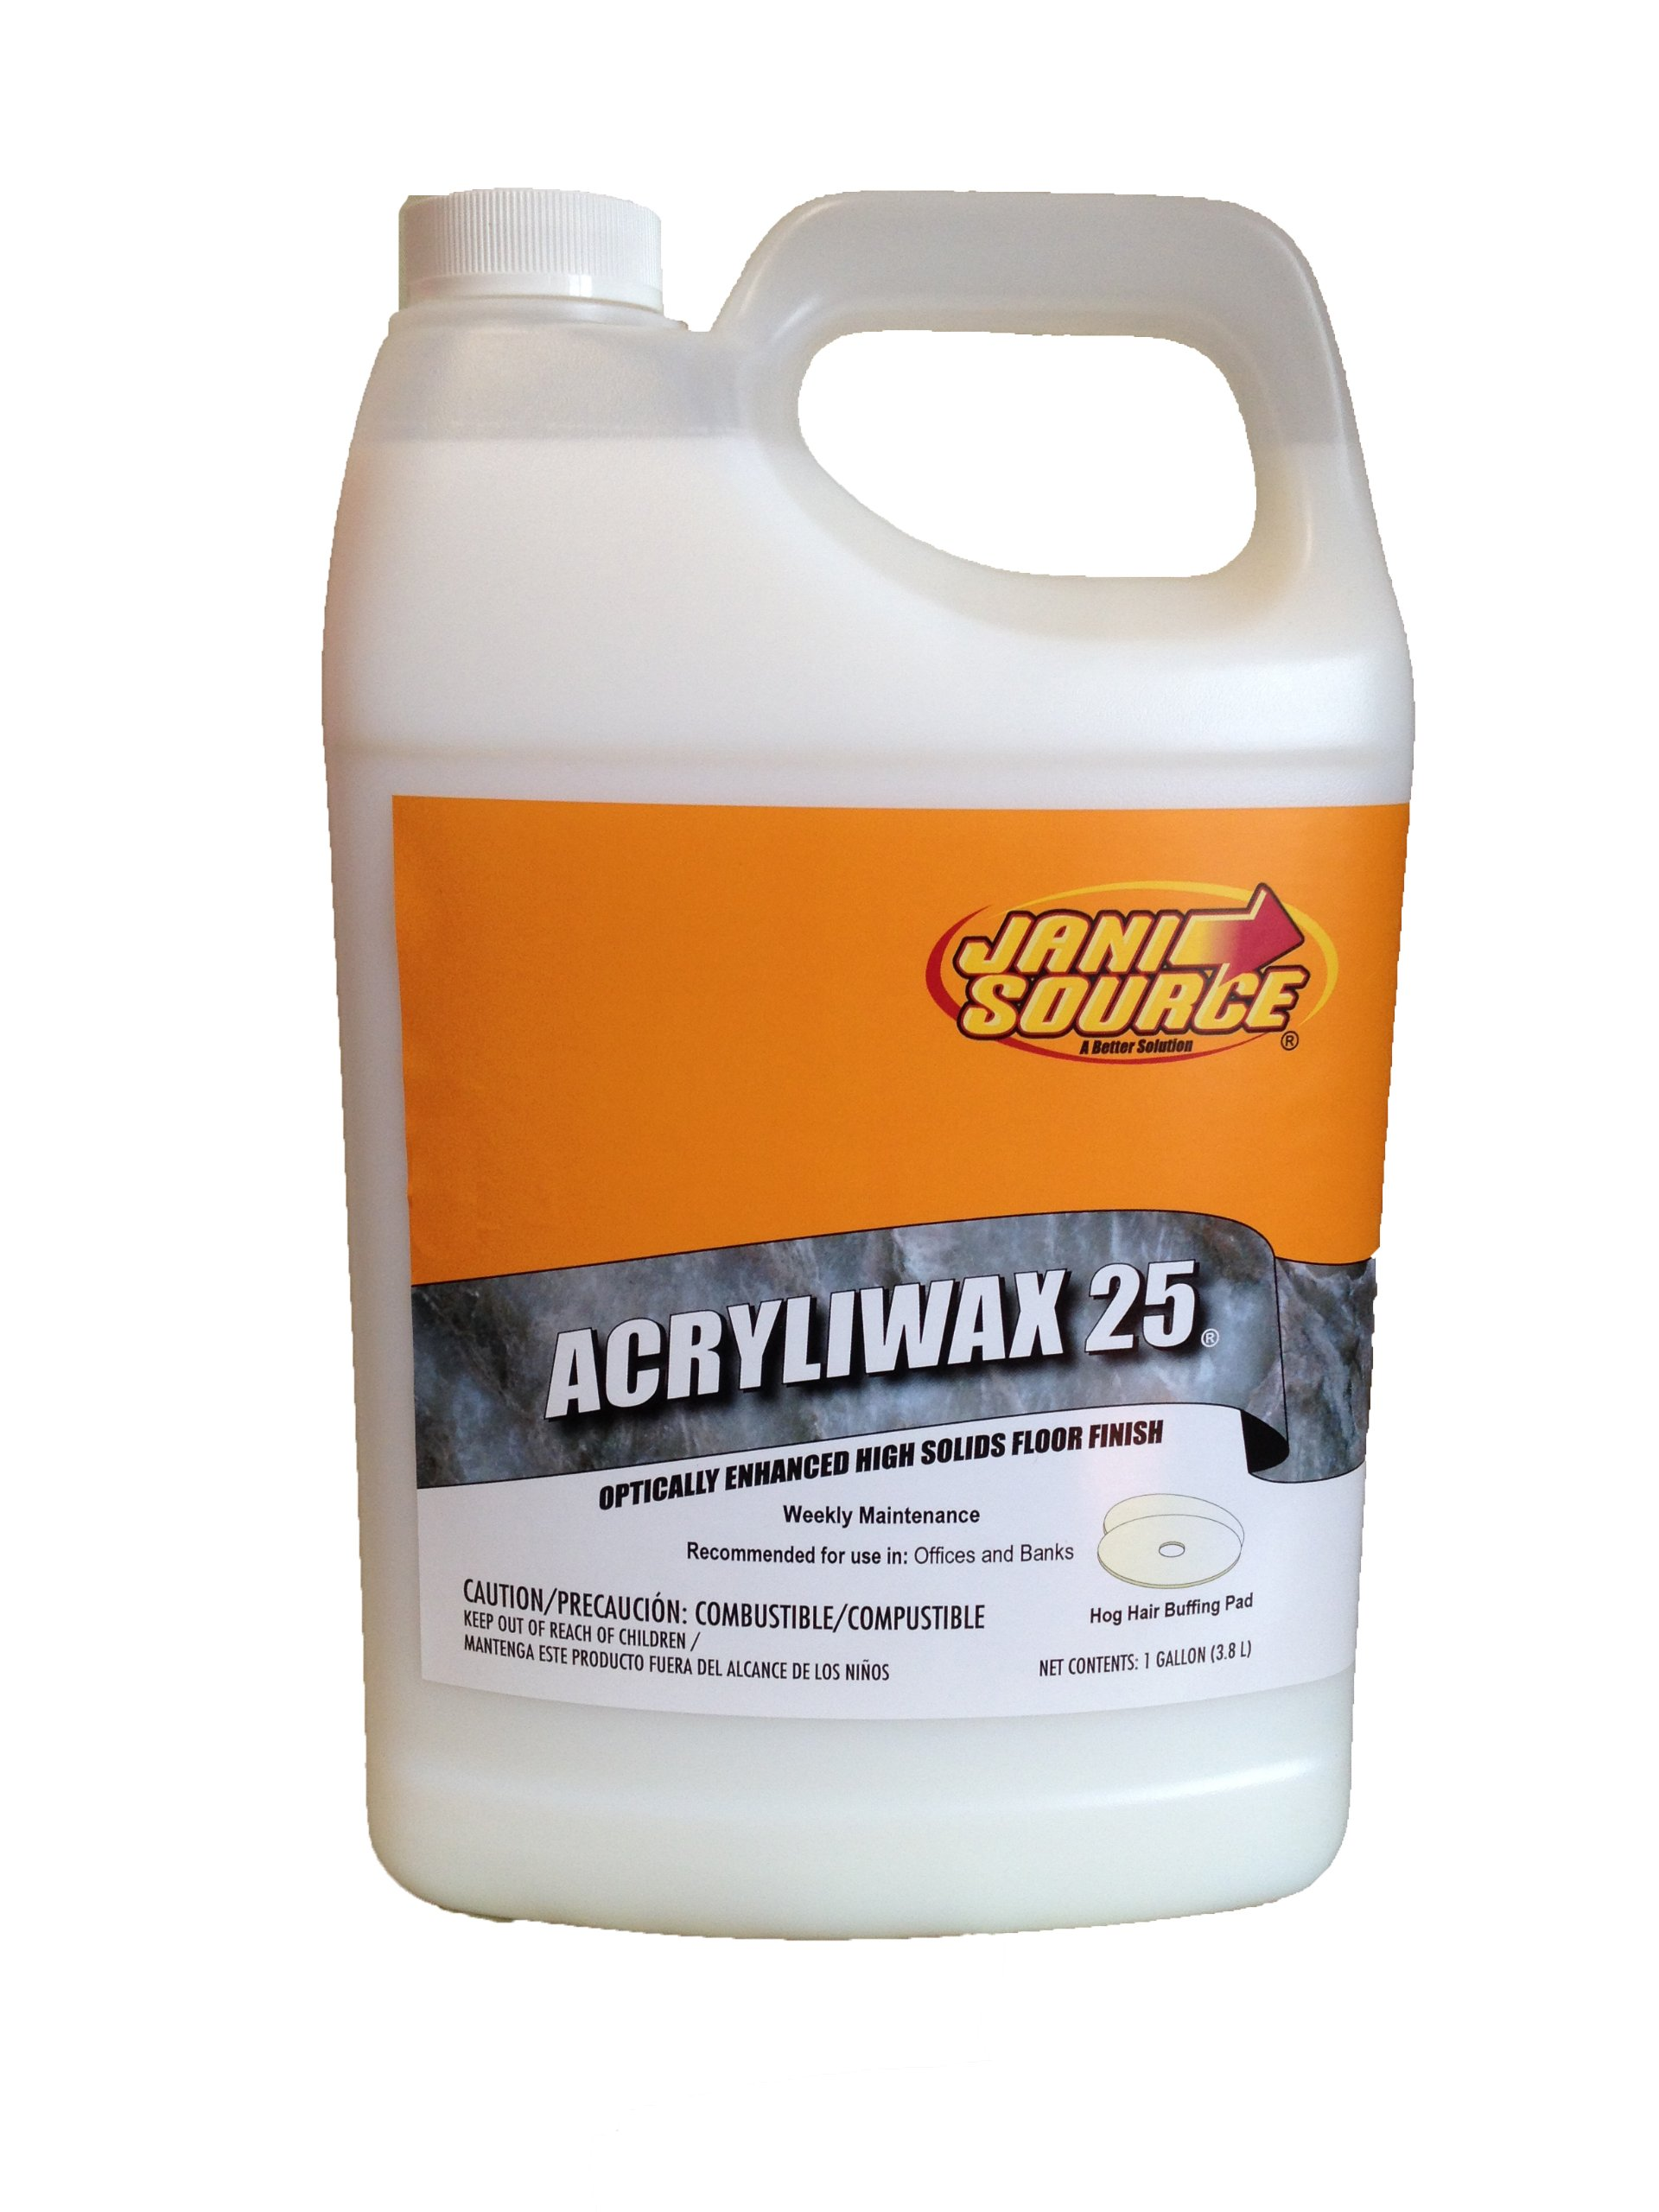 JaniSource 10107500 Acryliwax 25 High Solid Floor Wax, 1 Gallon Bottle (Pack of 4)